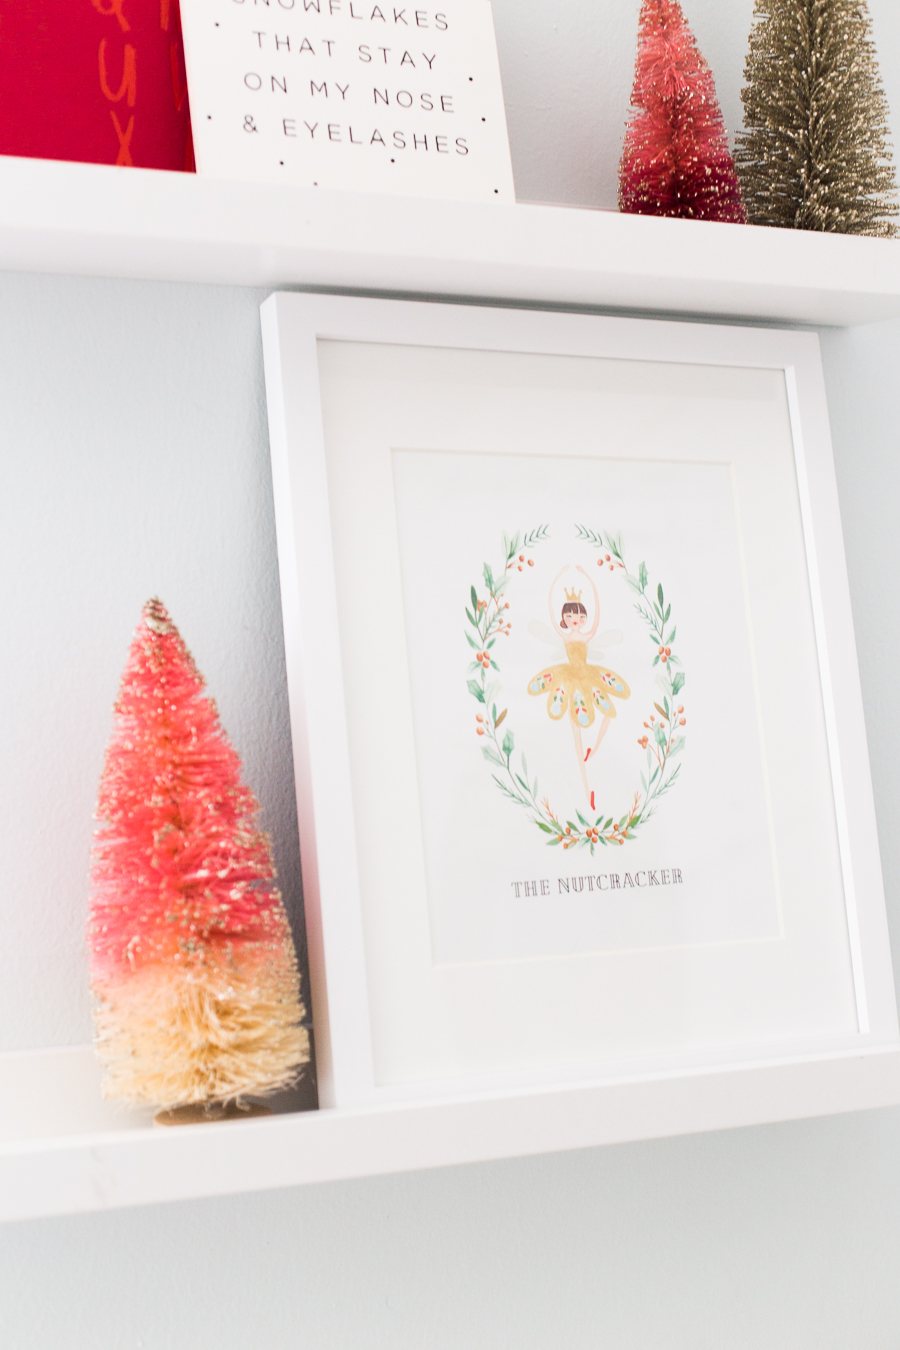 Free Nutcracker art print